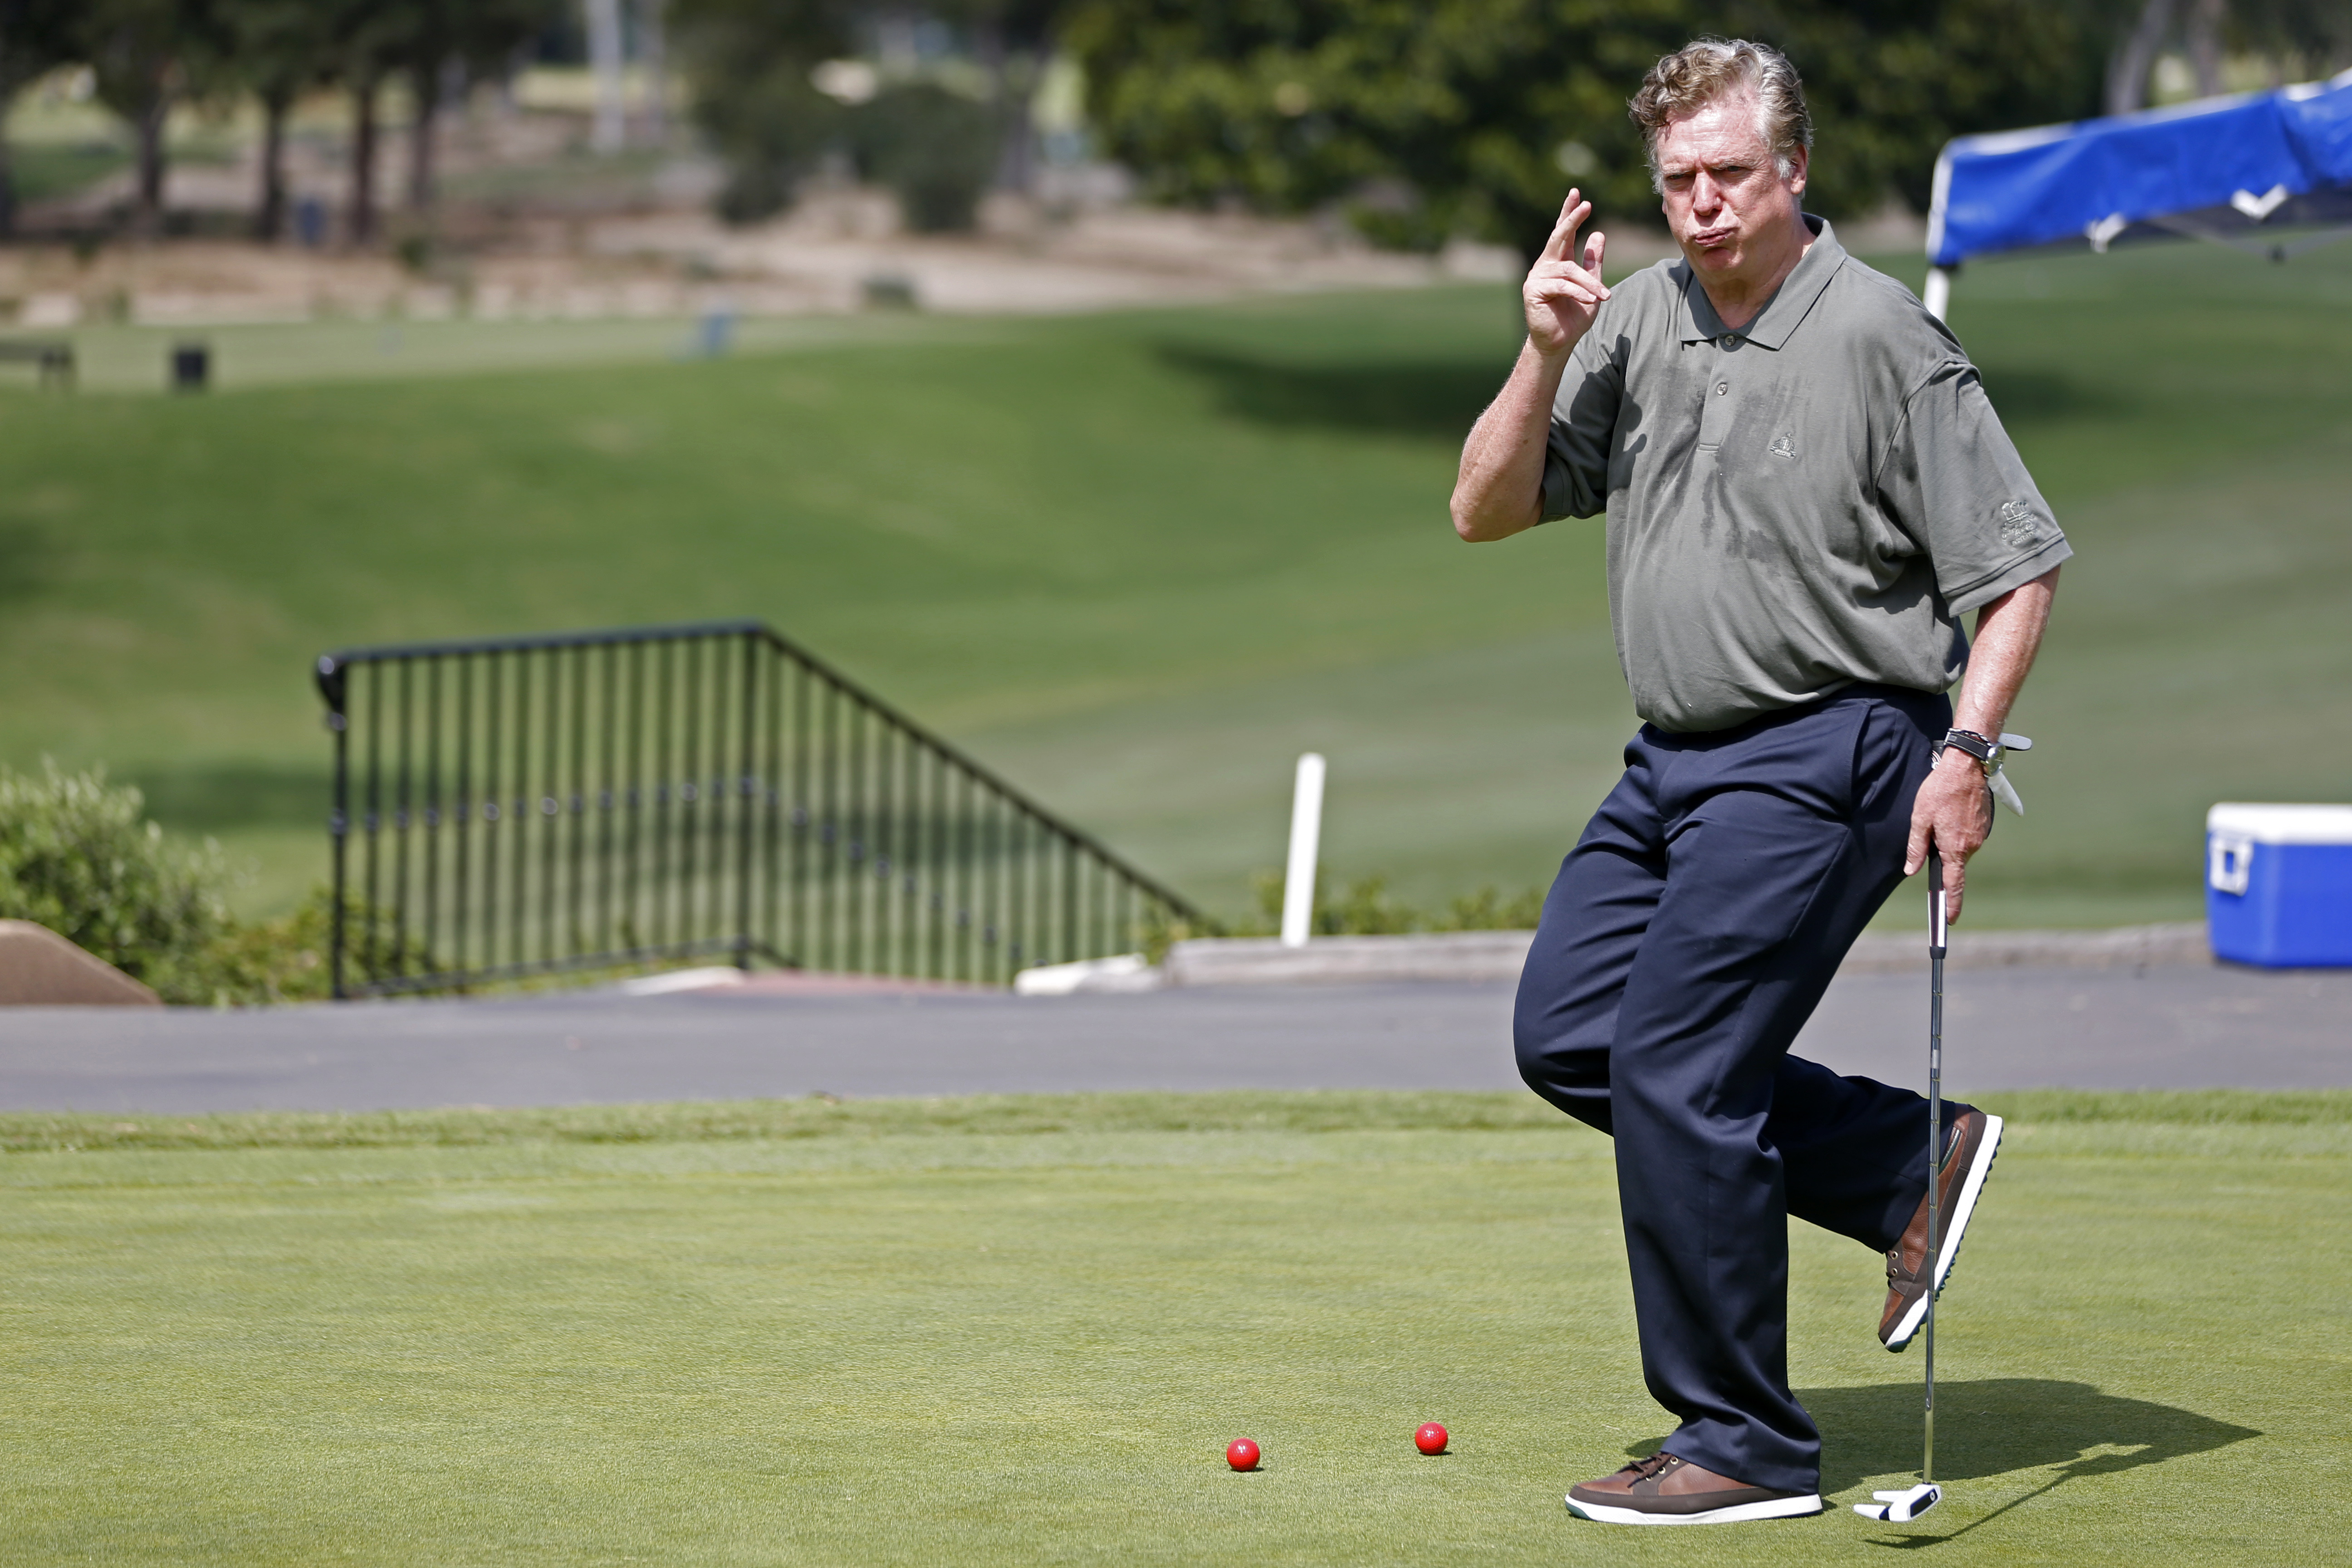 McGavin on the senior's tour. He would never recover from blowing his four shot lead on the back nine.